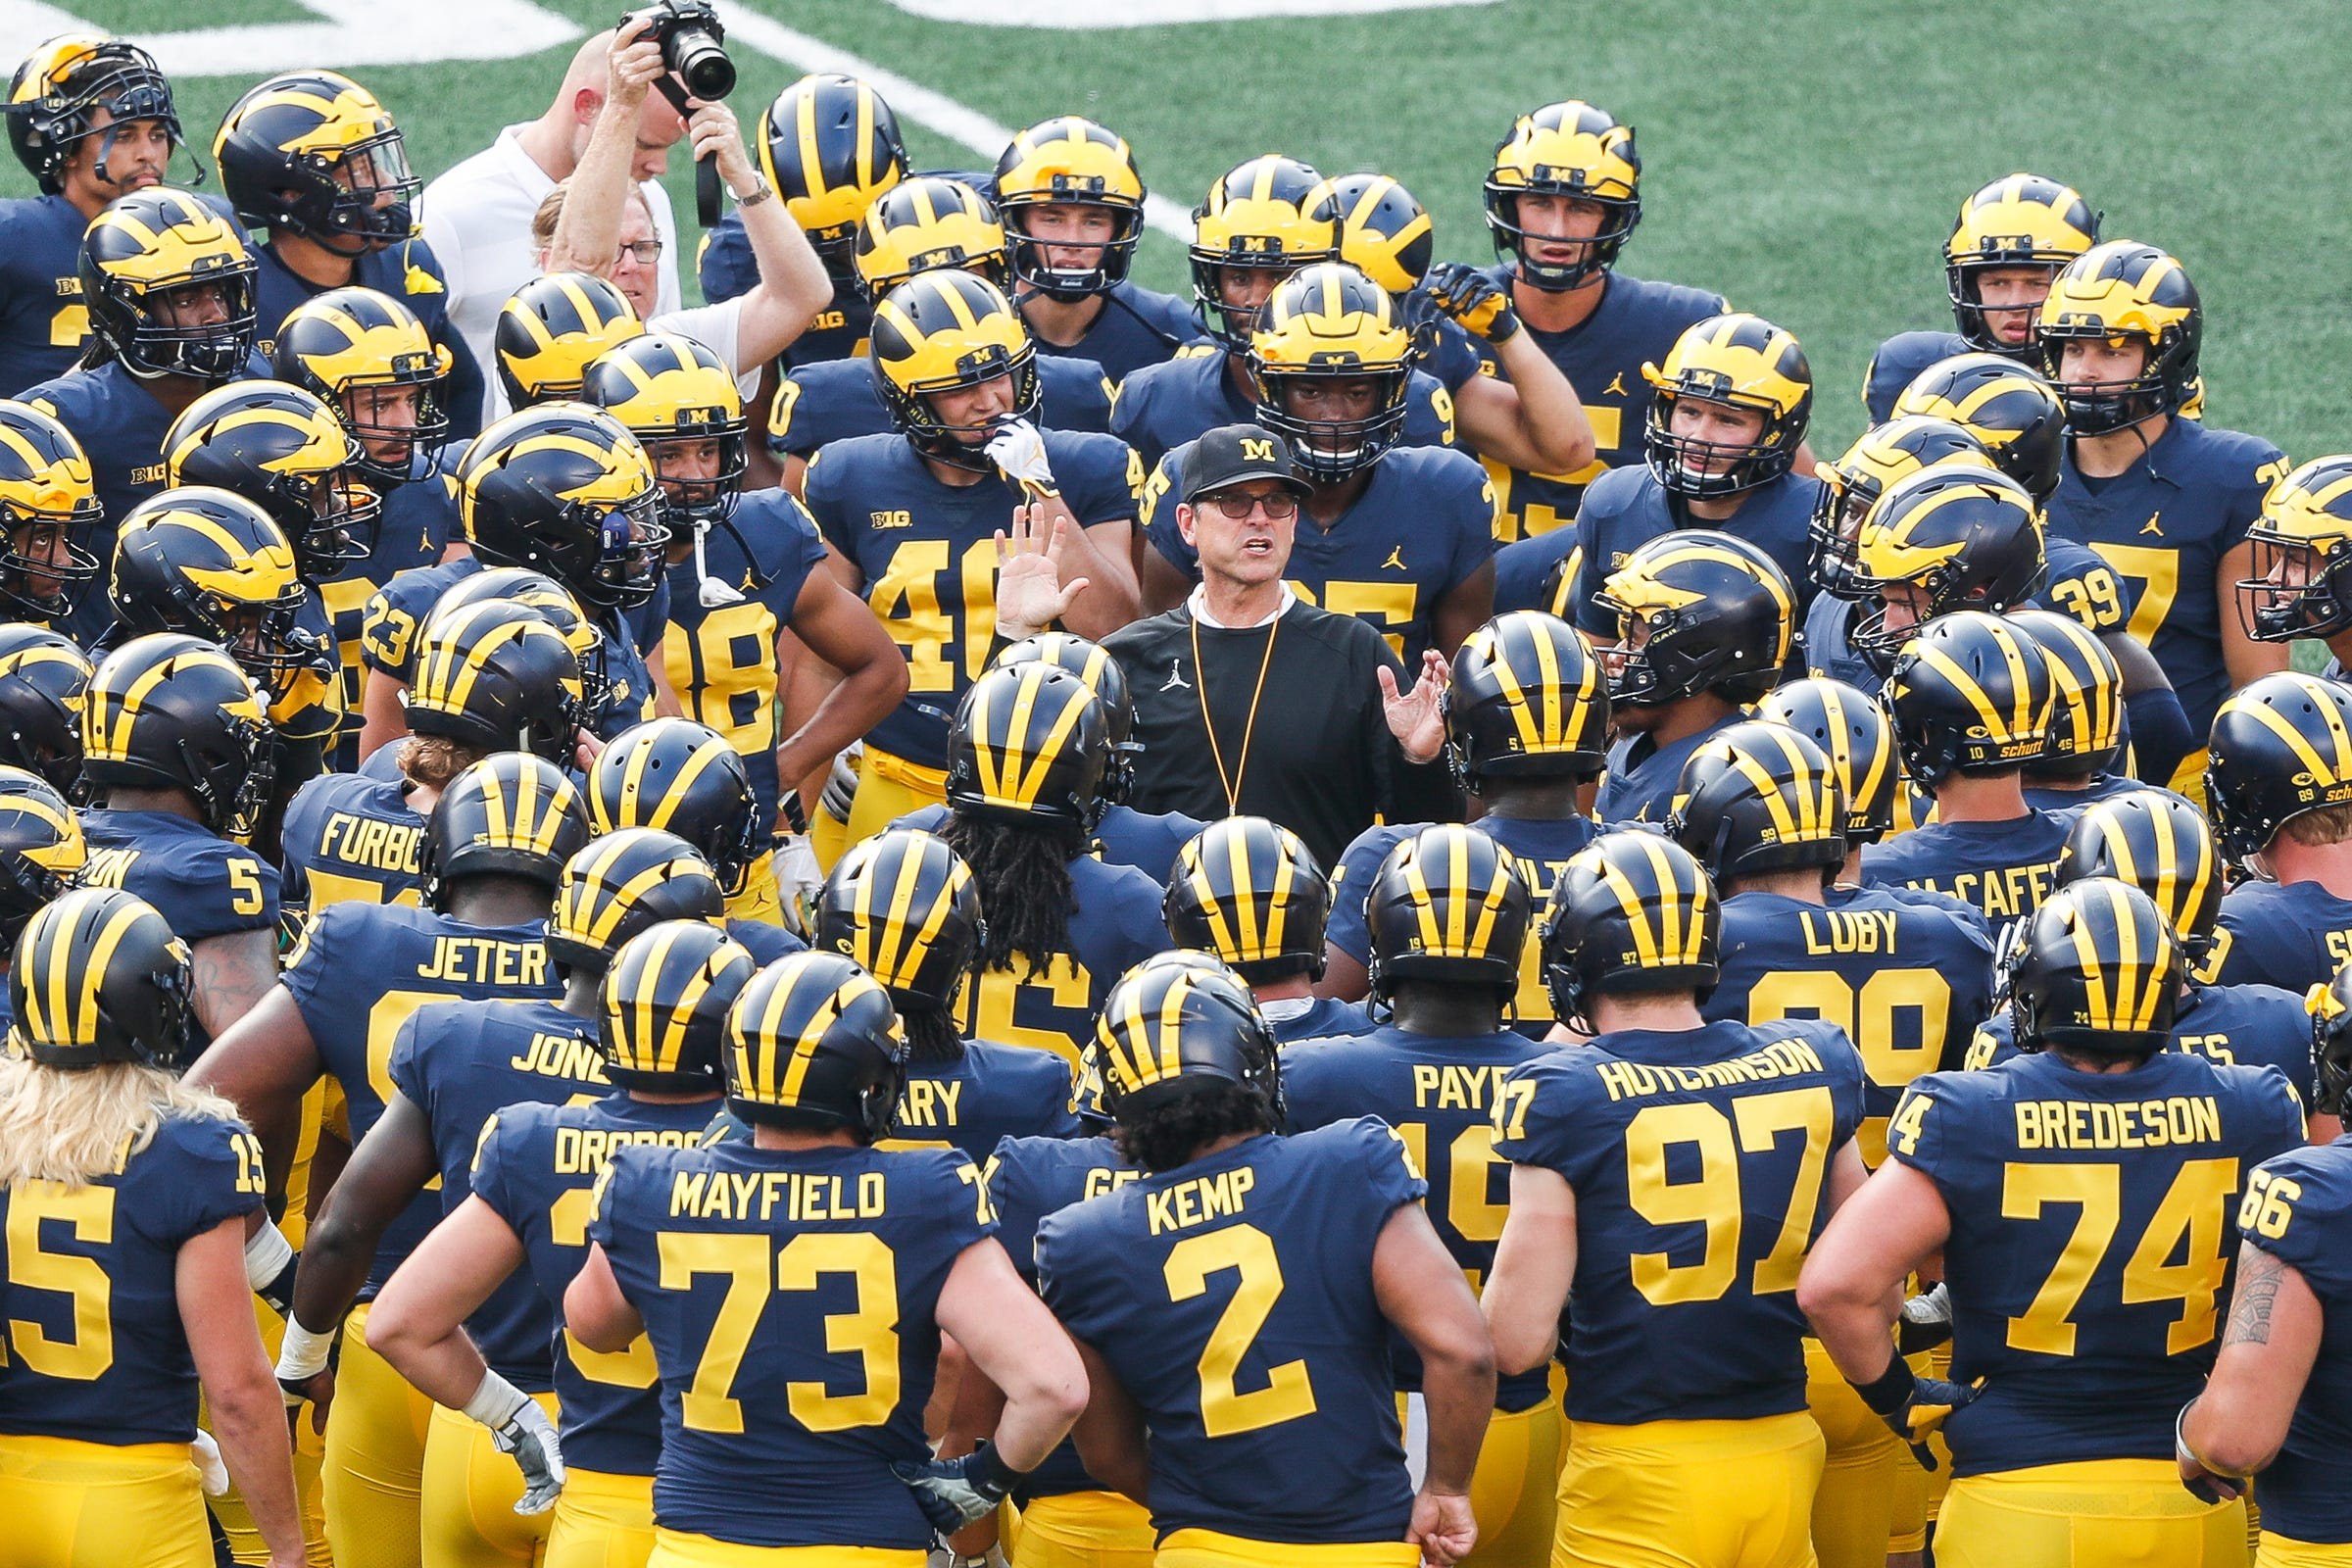 picture about Penn State Football Schedule Printable titled Michigan soccer program 2018: Video game achievements and recaps